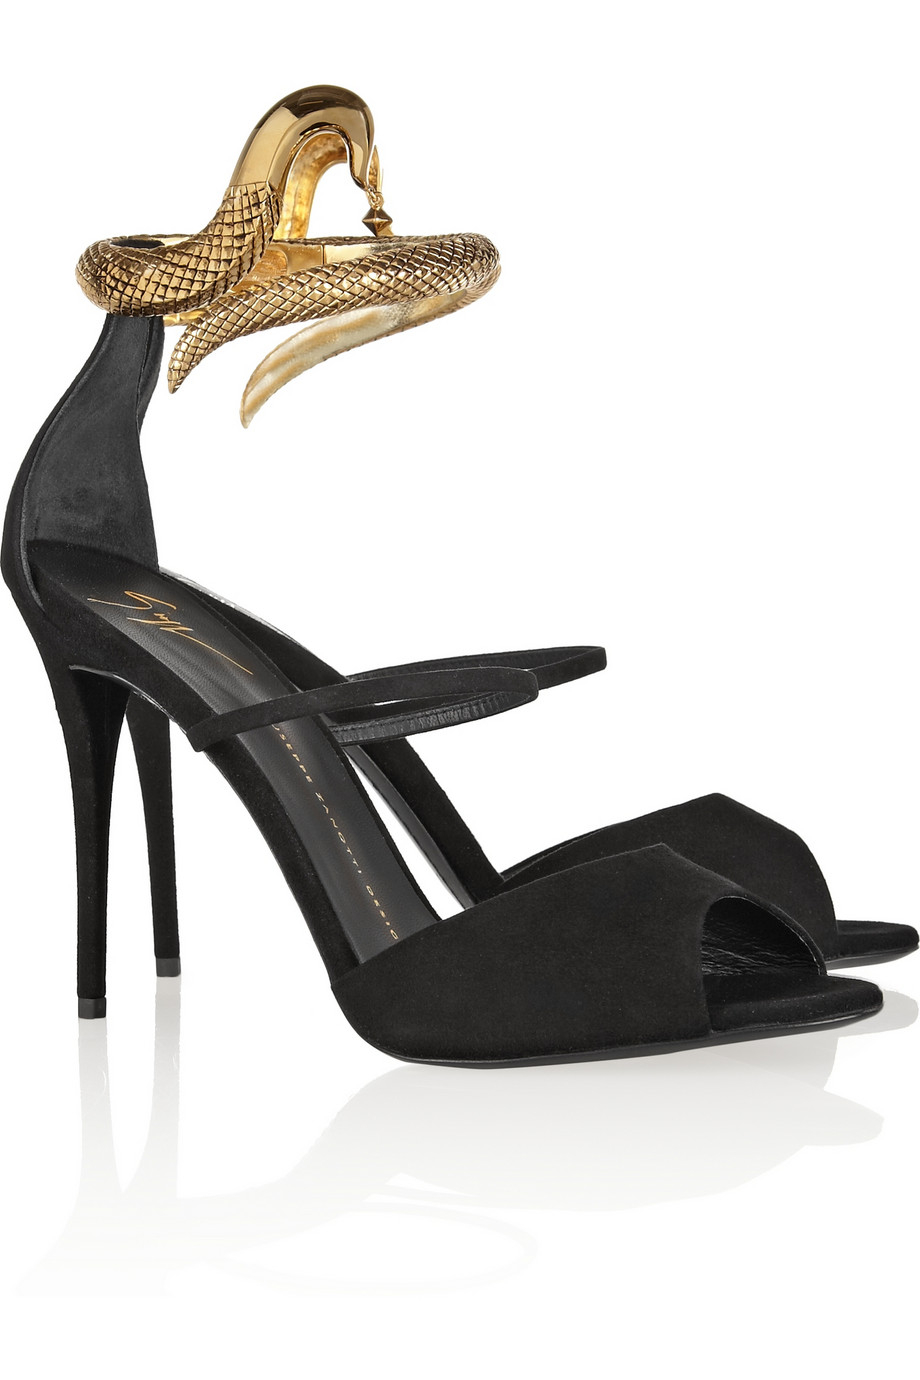 bdff8f18a2369 ... where to buy lyst giuseppe zanotti coline snake effect metal and suede  sandals ad317 f0a1e